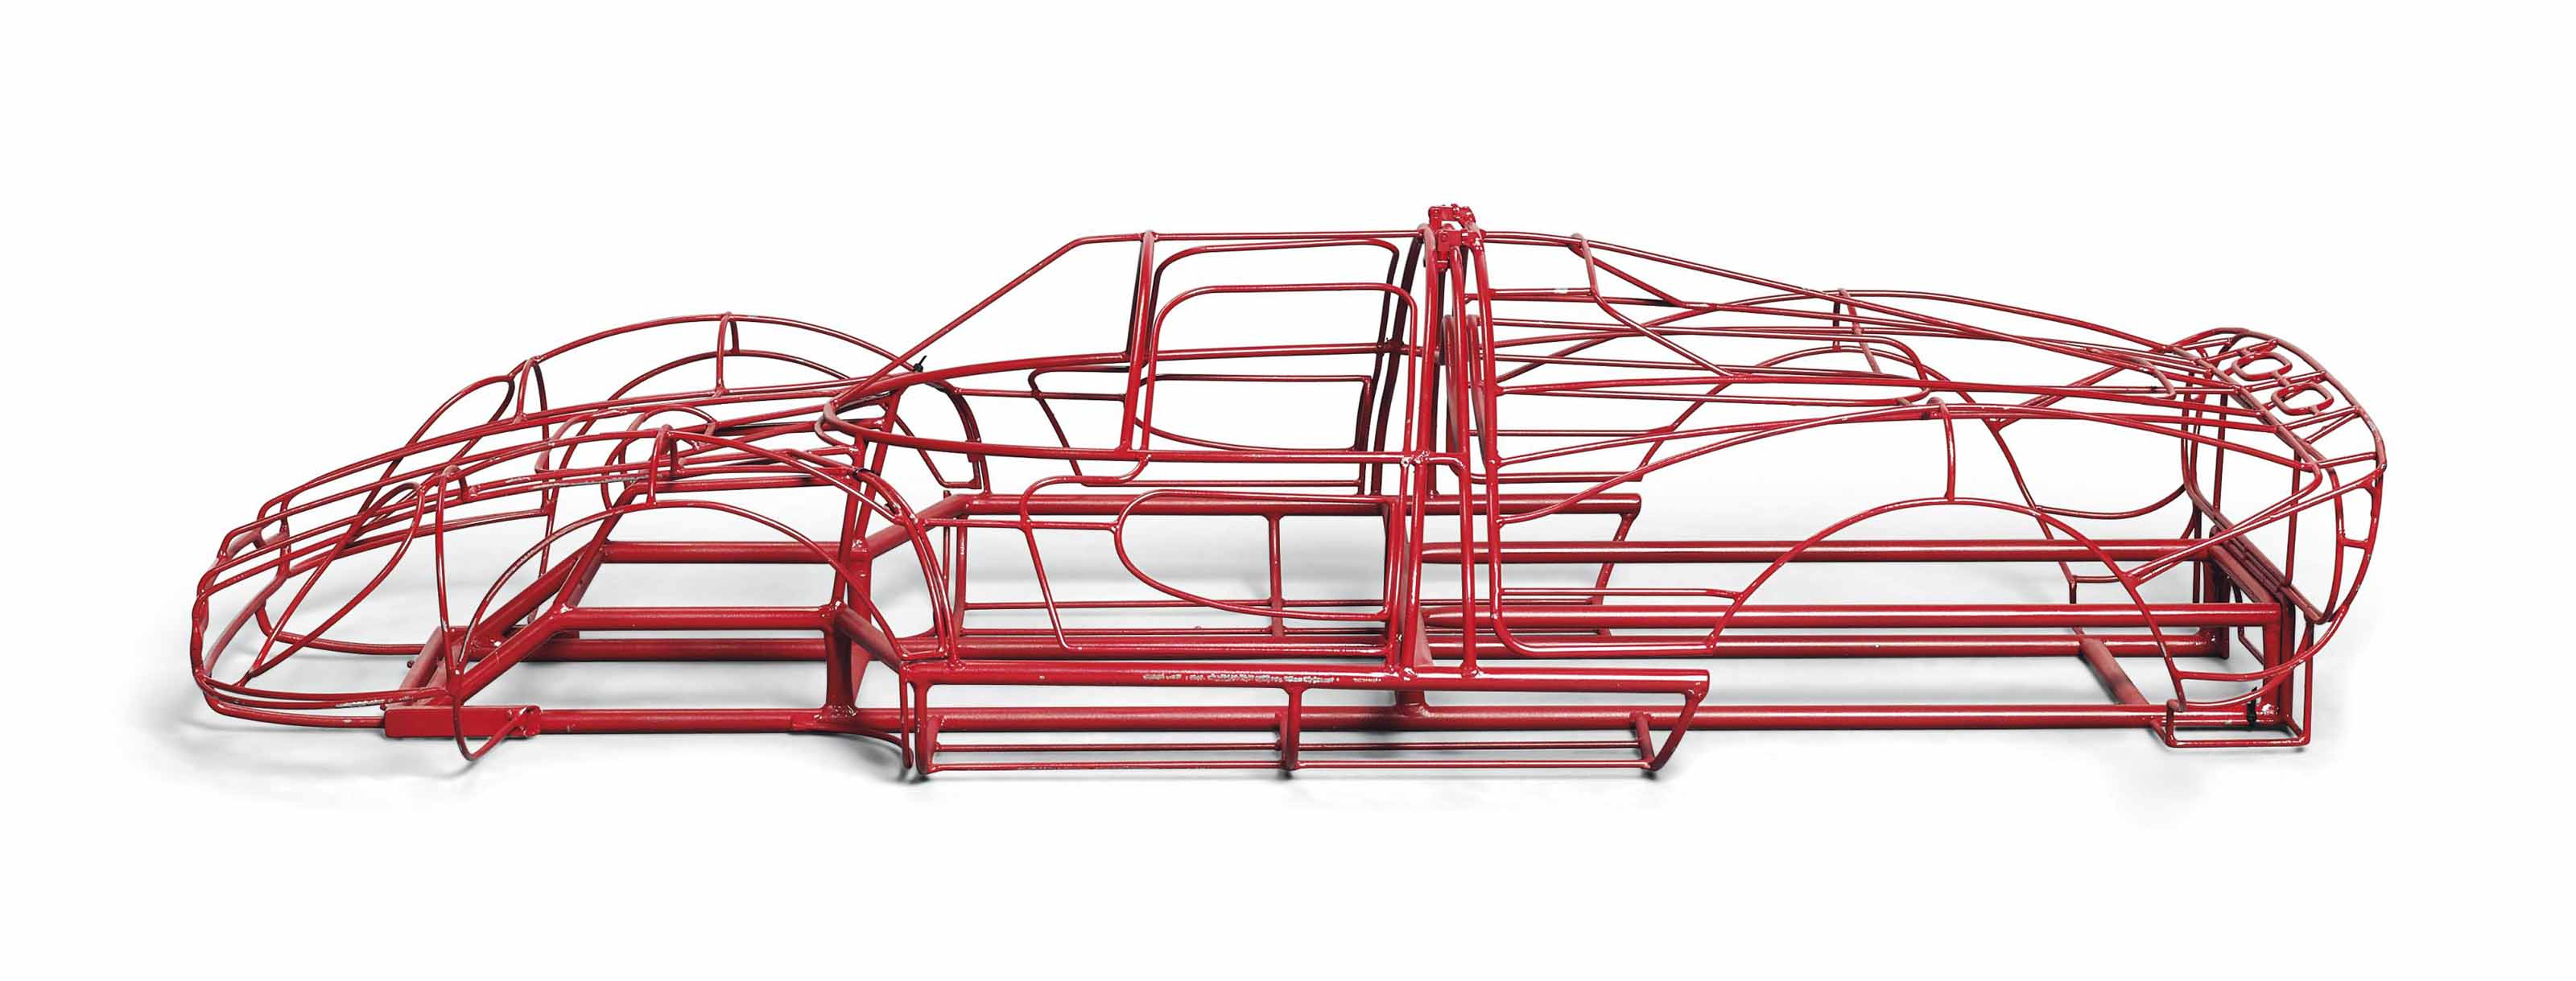 A 1/4 SCALE MODEL OF A RED-PAINTED WIRE BUCK MODEL OF A SPORTS PROTOTYPE